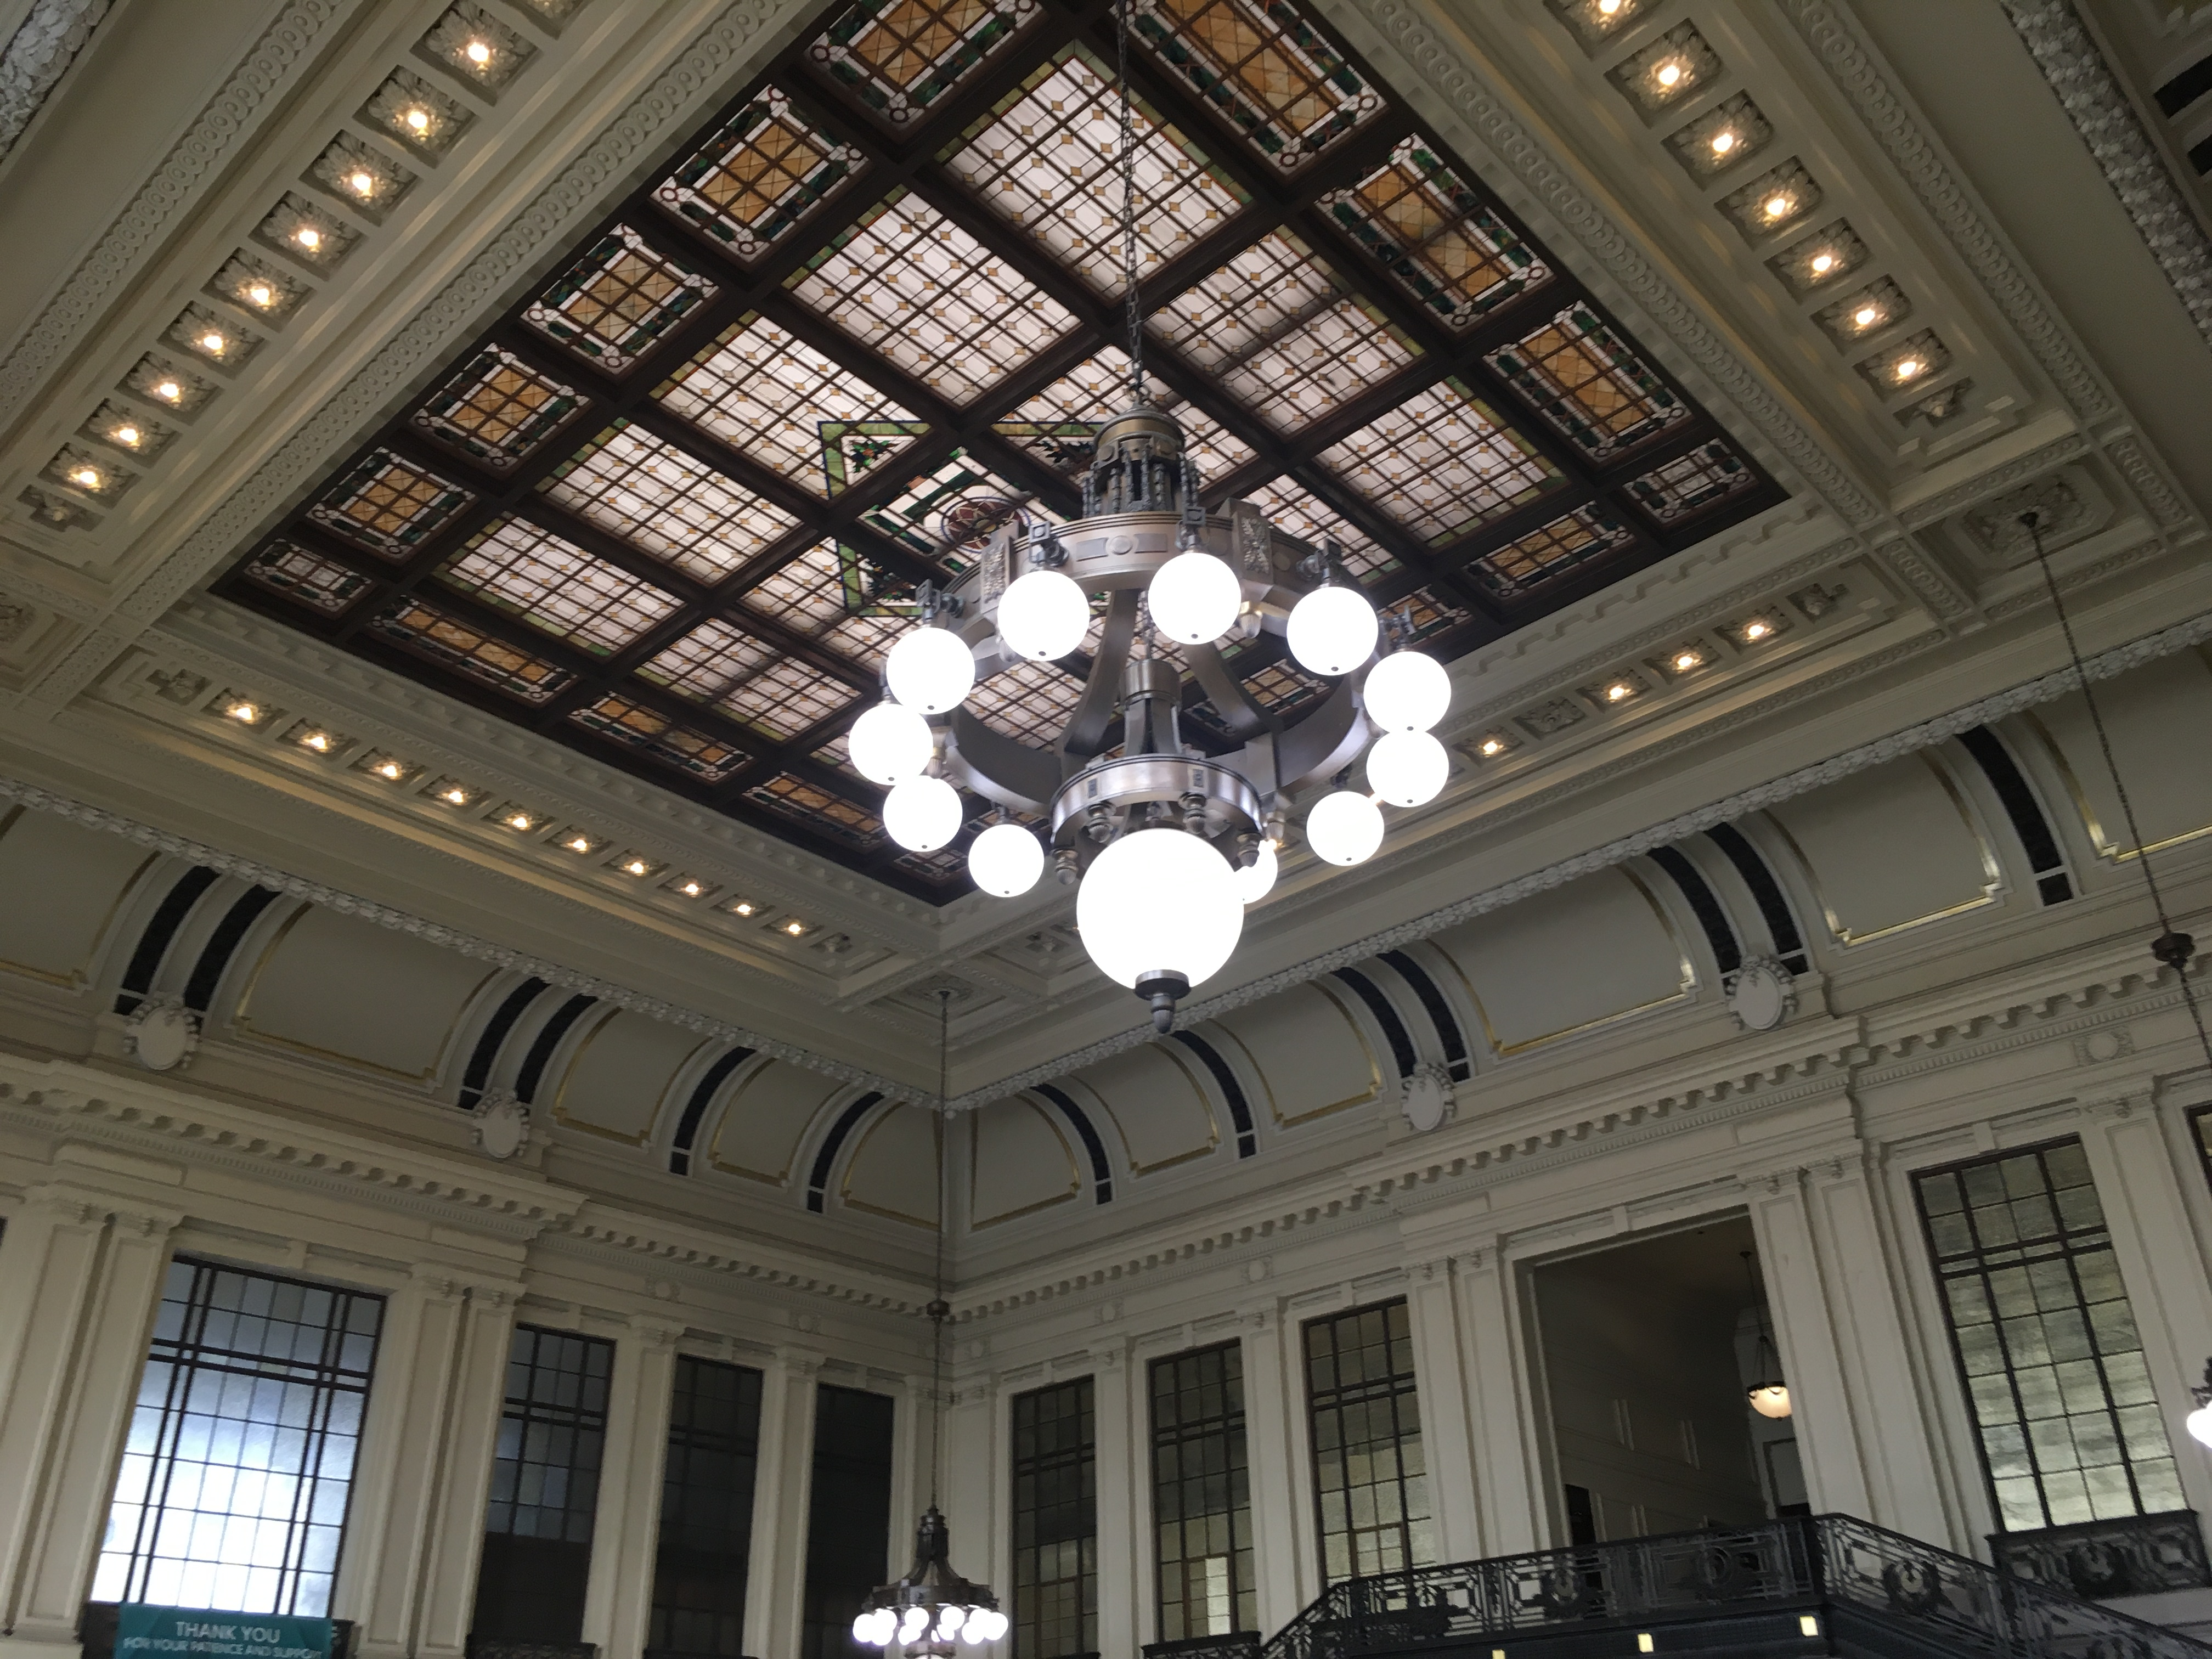 Photo of a pretty train station ceiling